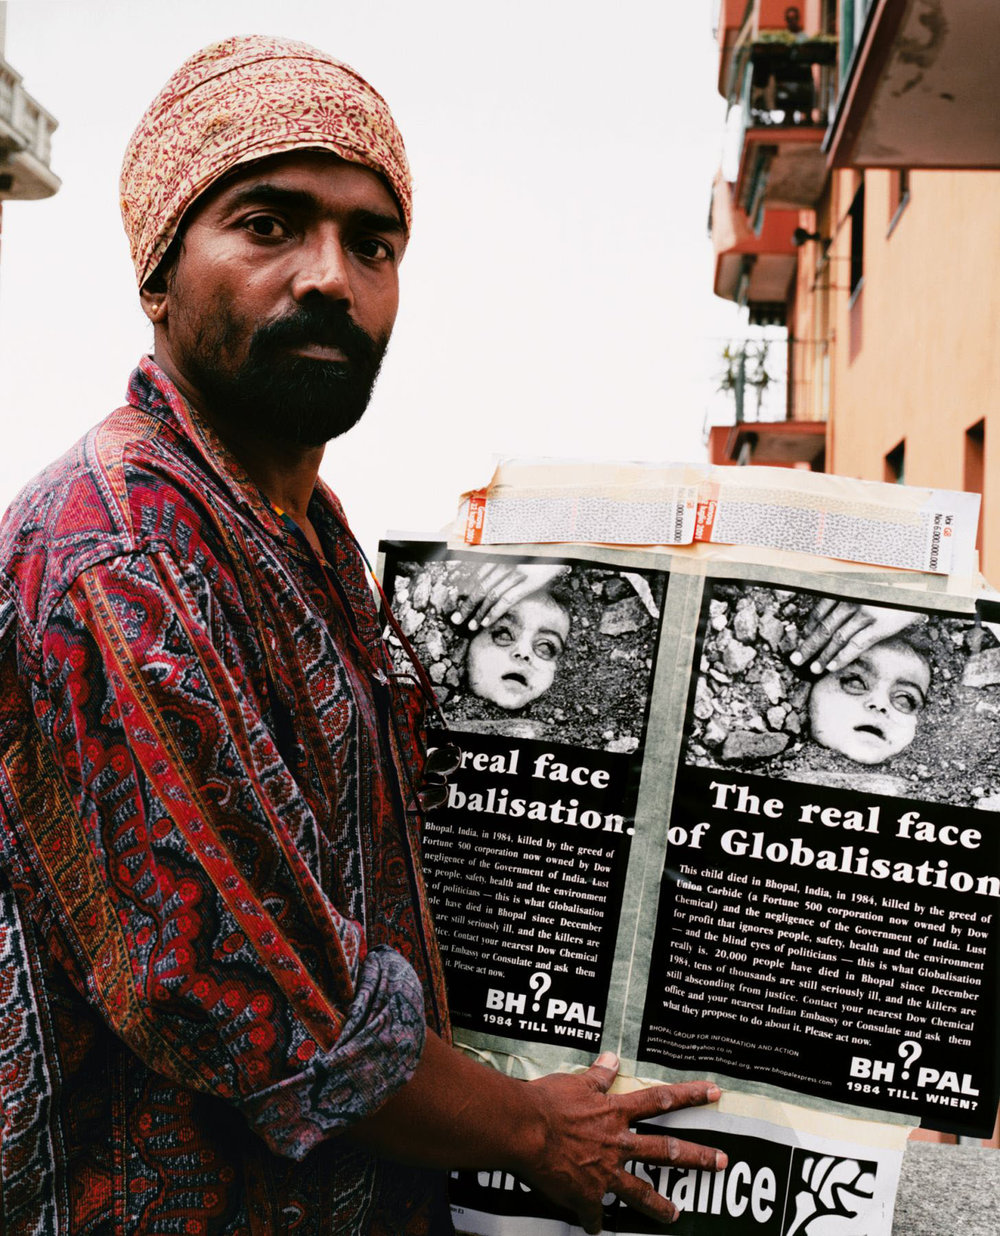 A Protester from Bhopal, India, 2001